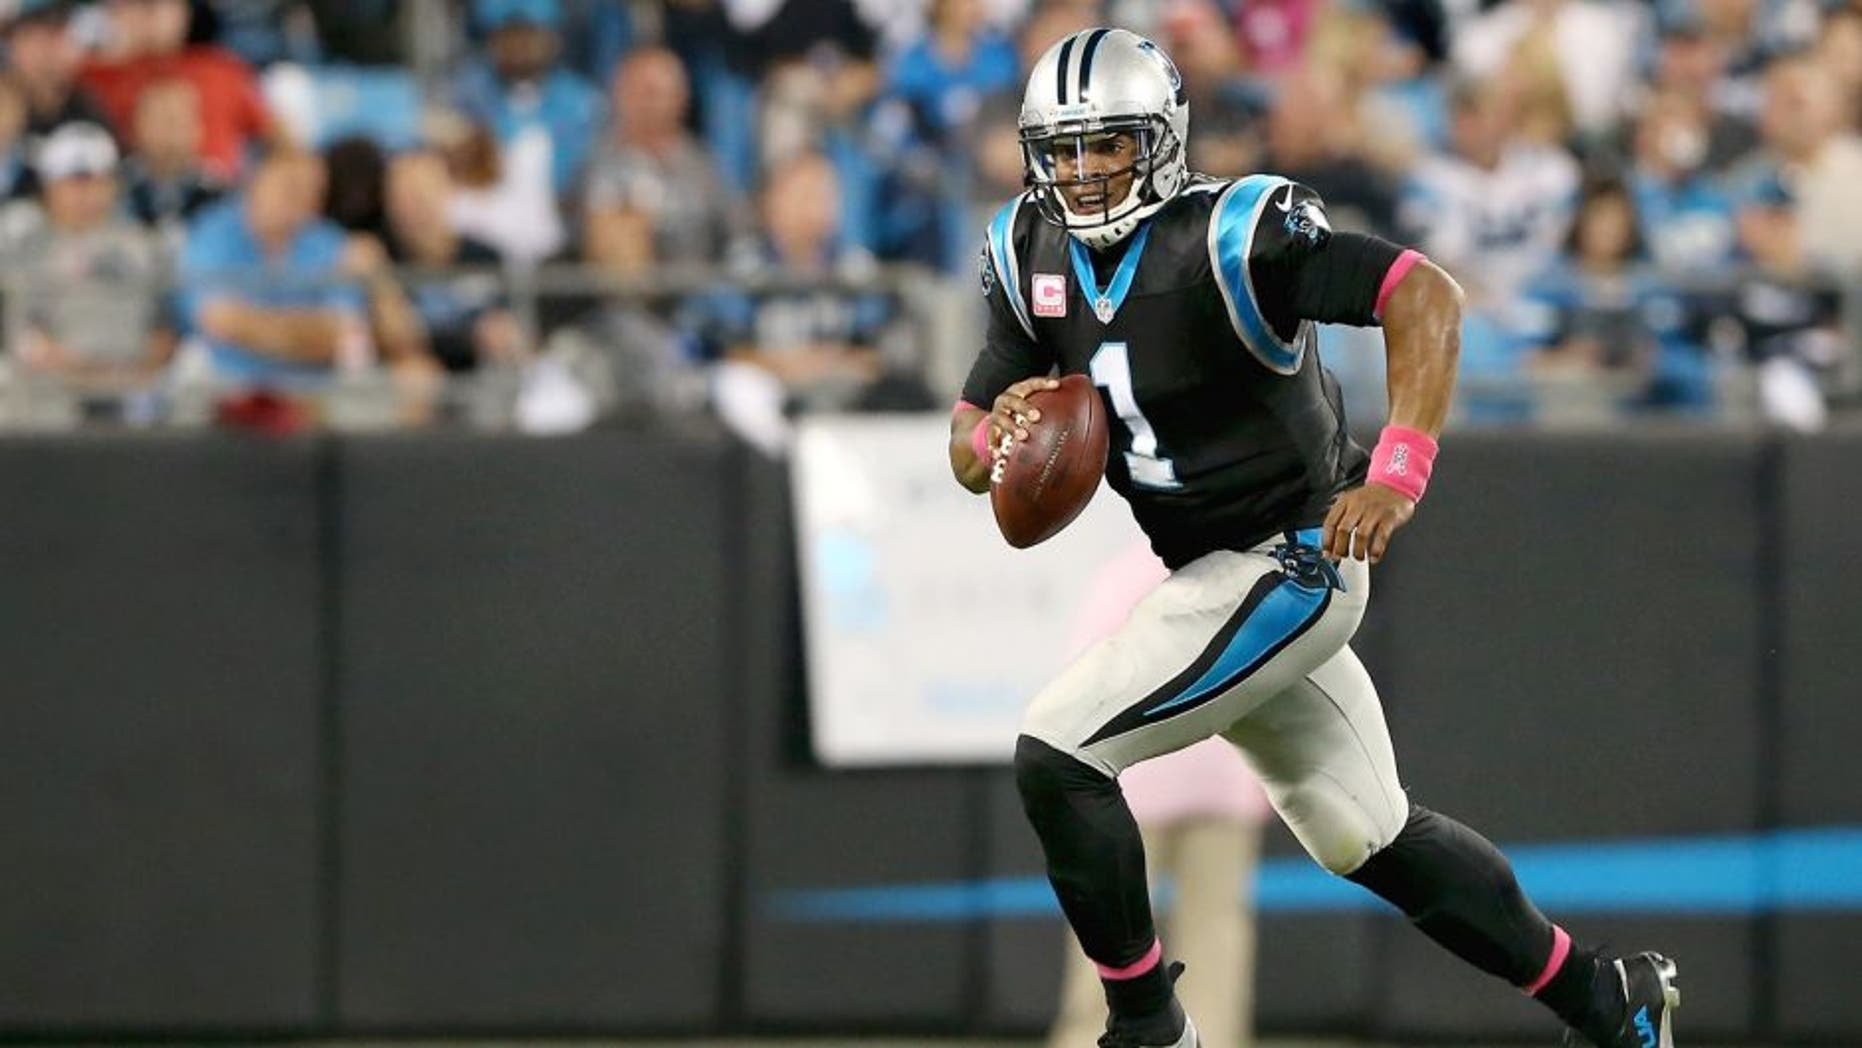 CHARLOTTE, NC - OCTOBER 25: Cam Newton #1 of the Carolina Panthers during their game at Bank of America Stadium on October 25, 2015 in Charlotte, North Carolina. (Photo by Streeter Lecka/Getty Images)